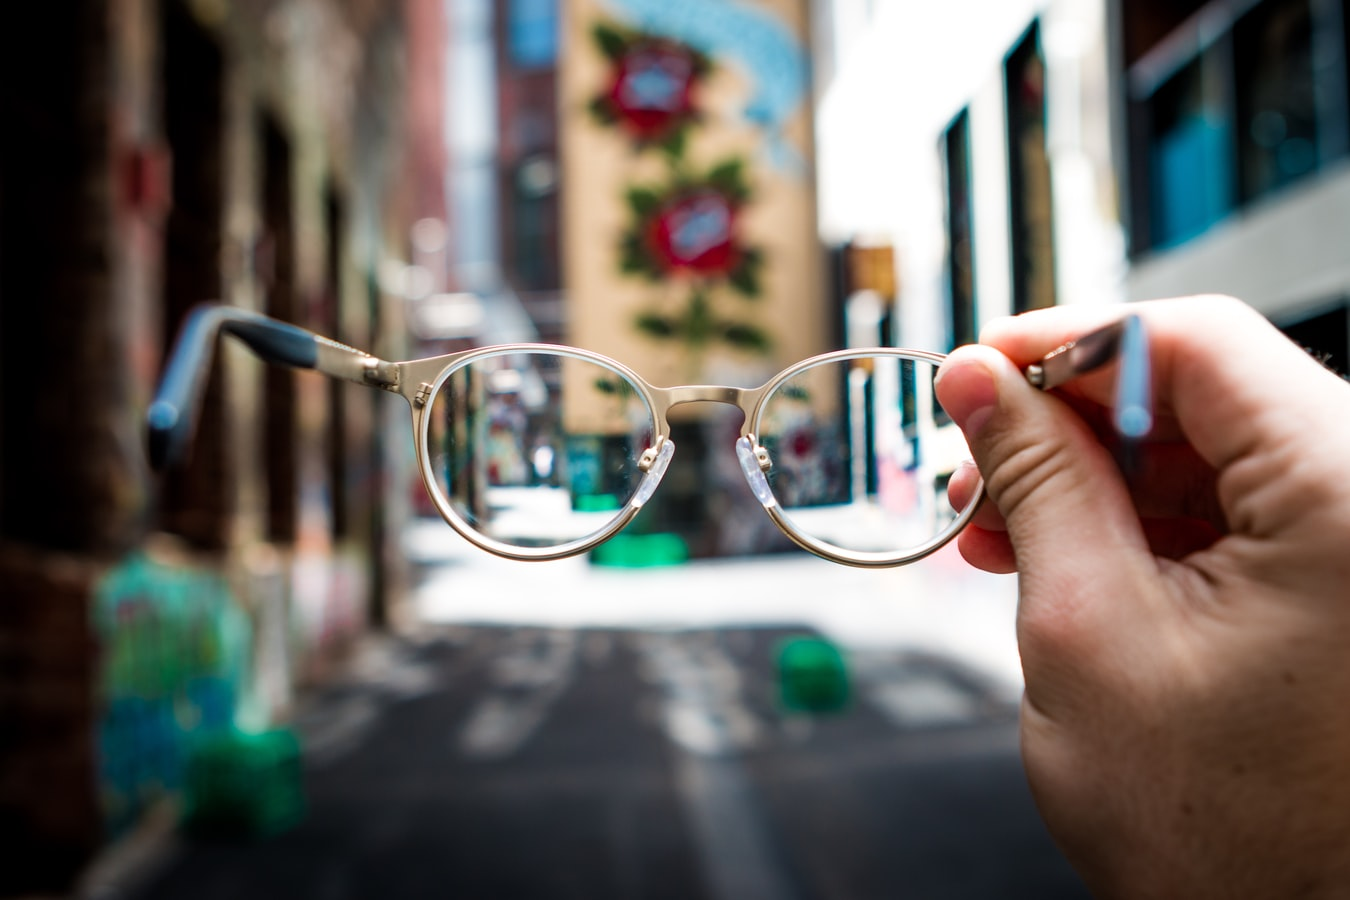 A pair of glasses looking at an out of focus neighborhood